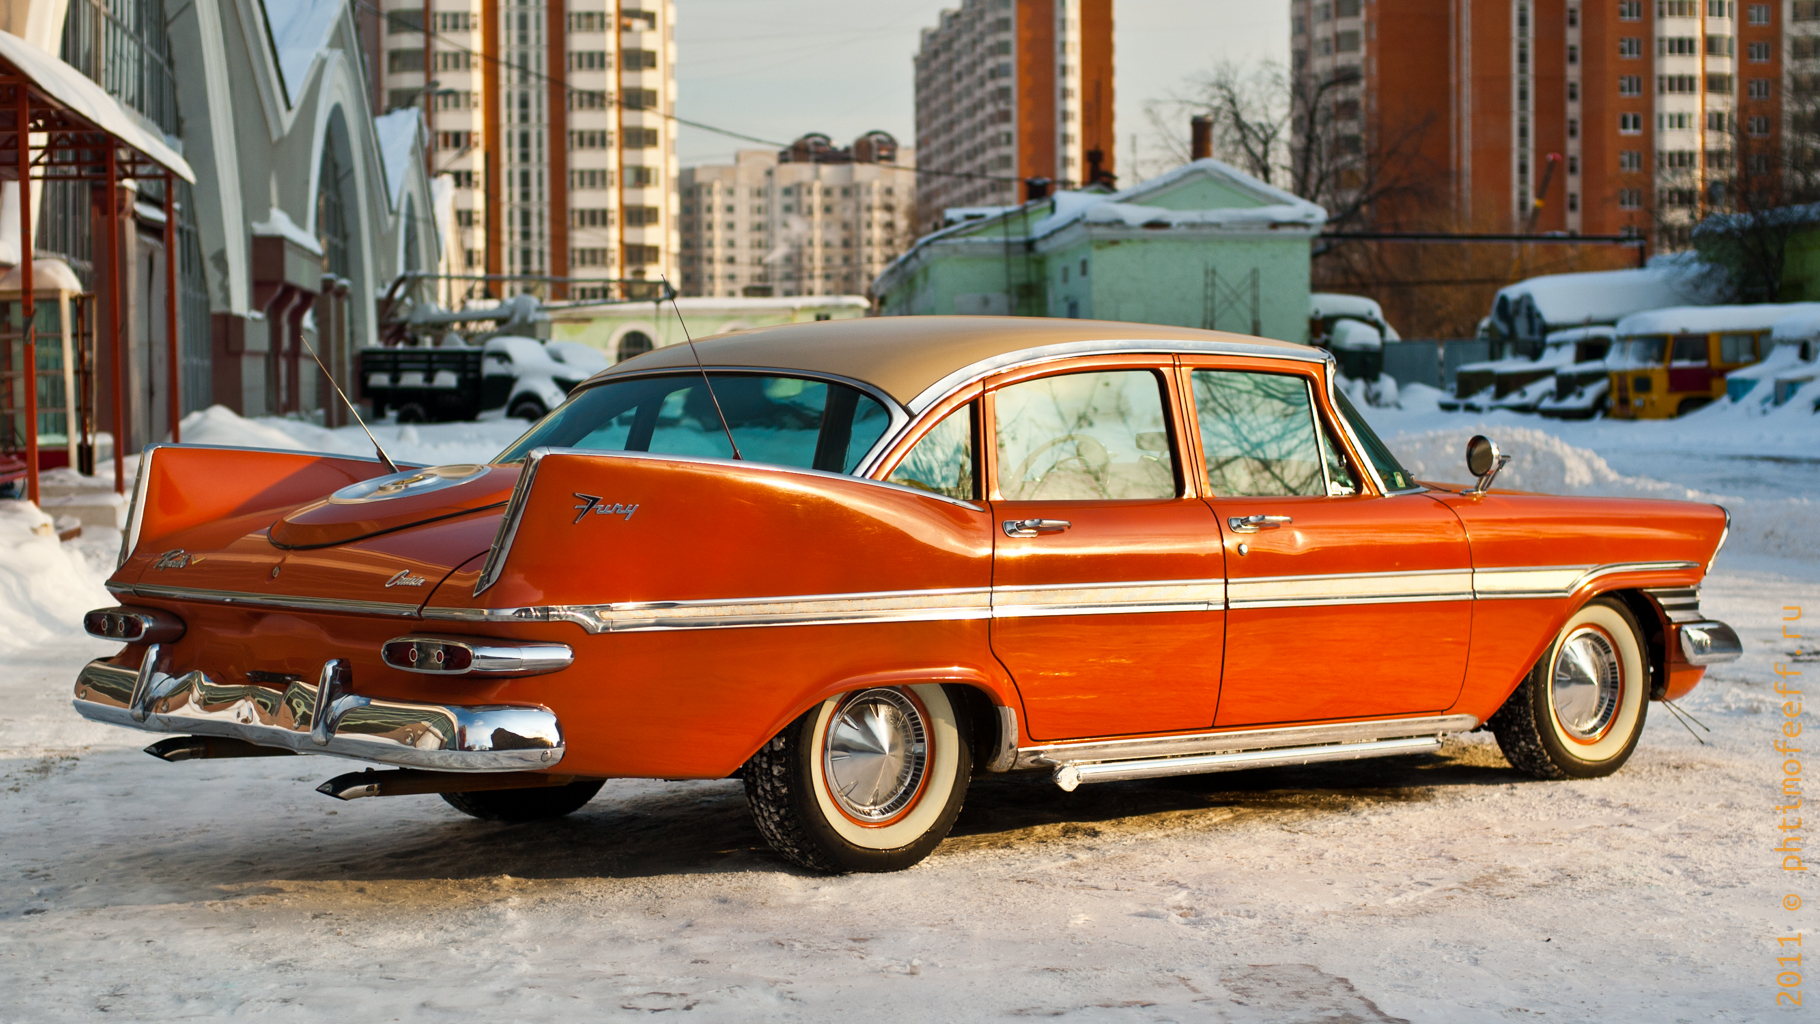 Plymouth Fury 1958 (Плимут Фурия) - авто, автомобиль, история, ретро автомобиль